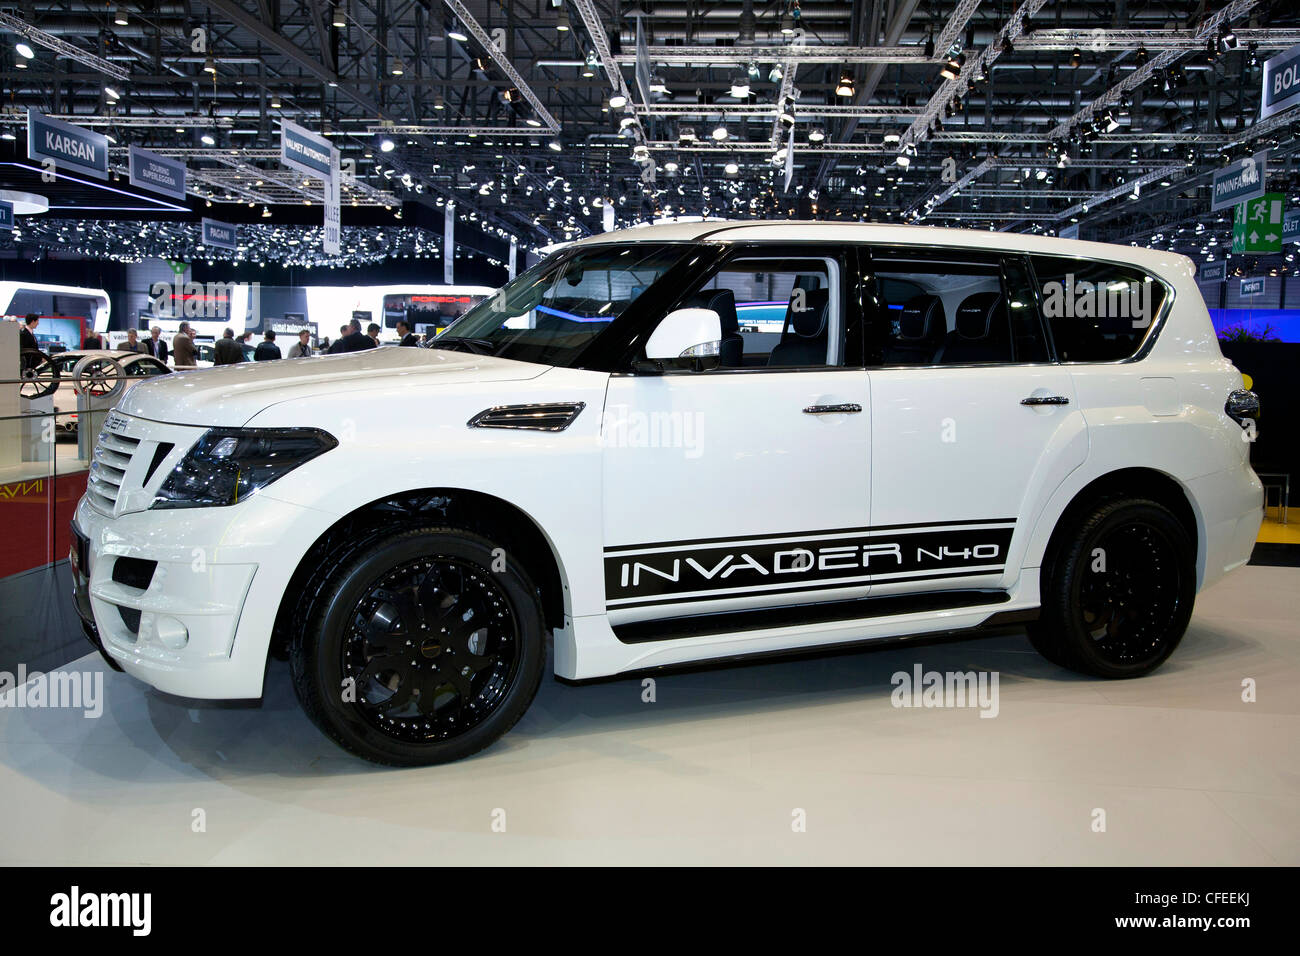 Nissan Patrol High Resolution Stock Photography And Images Alamy